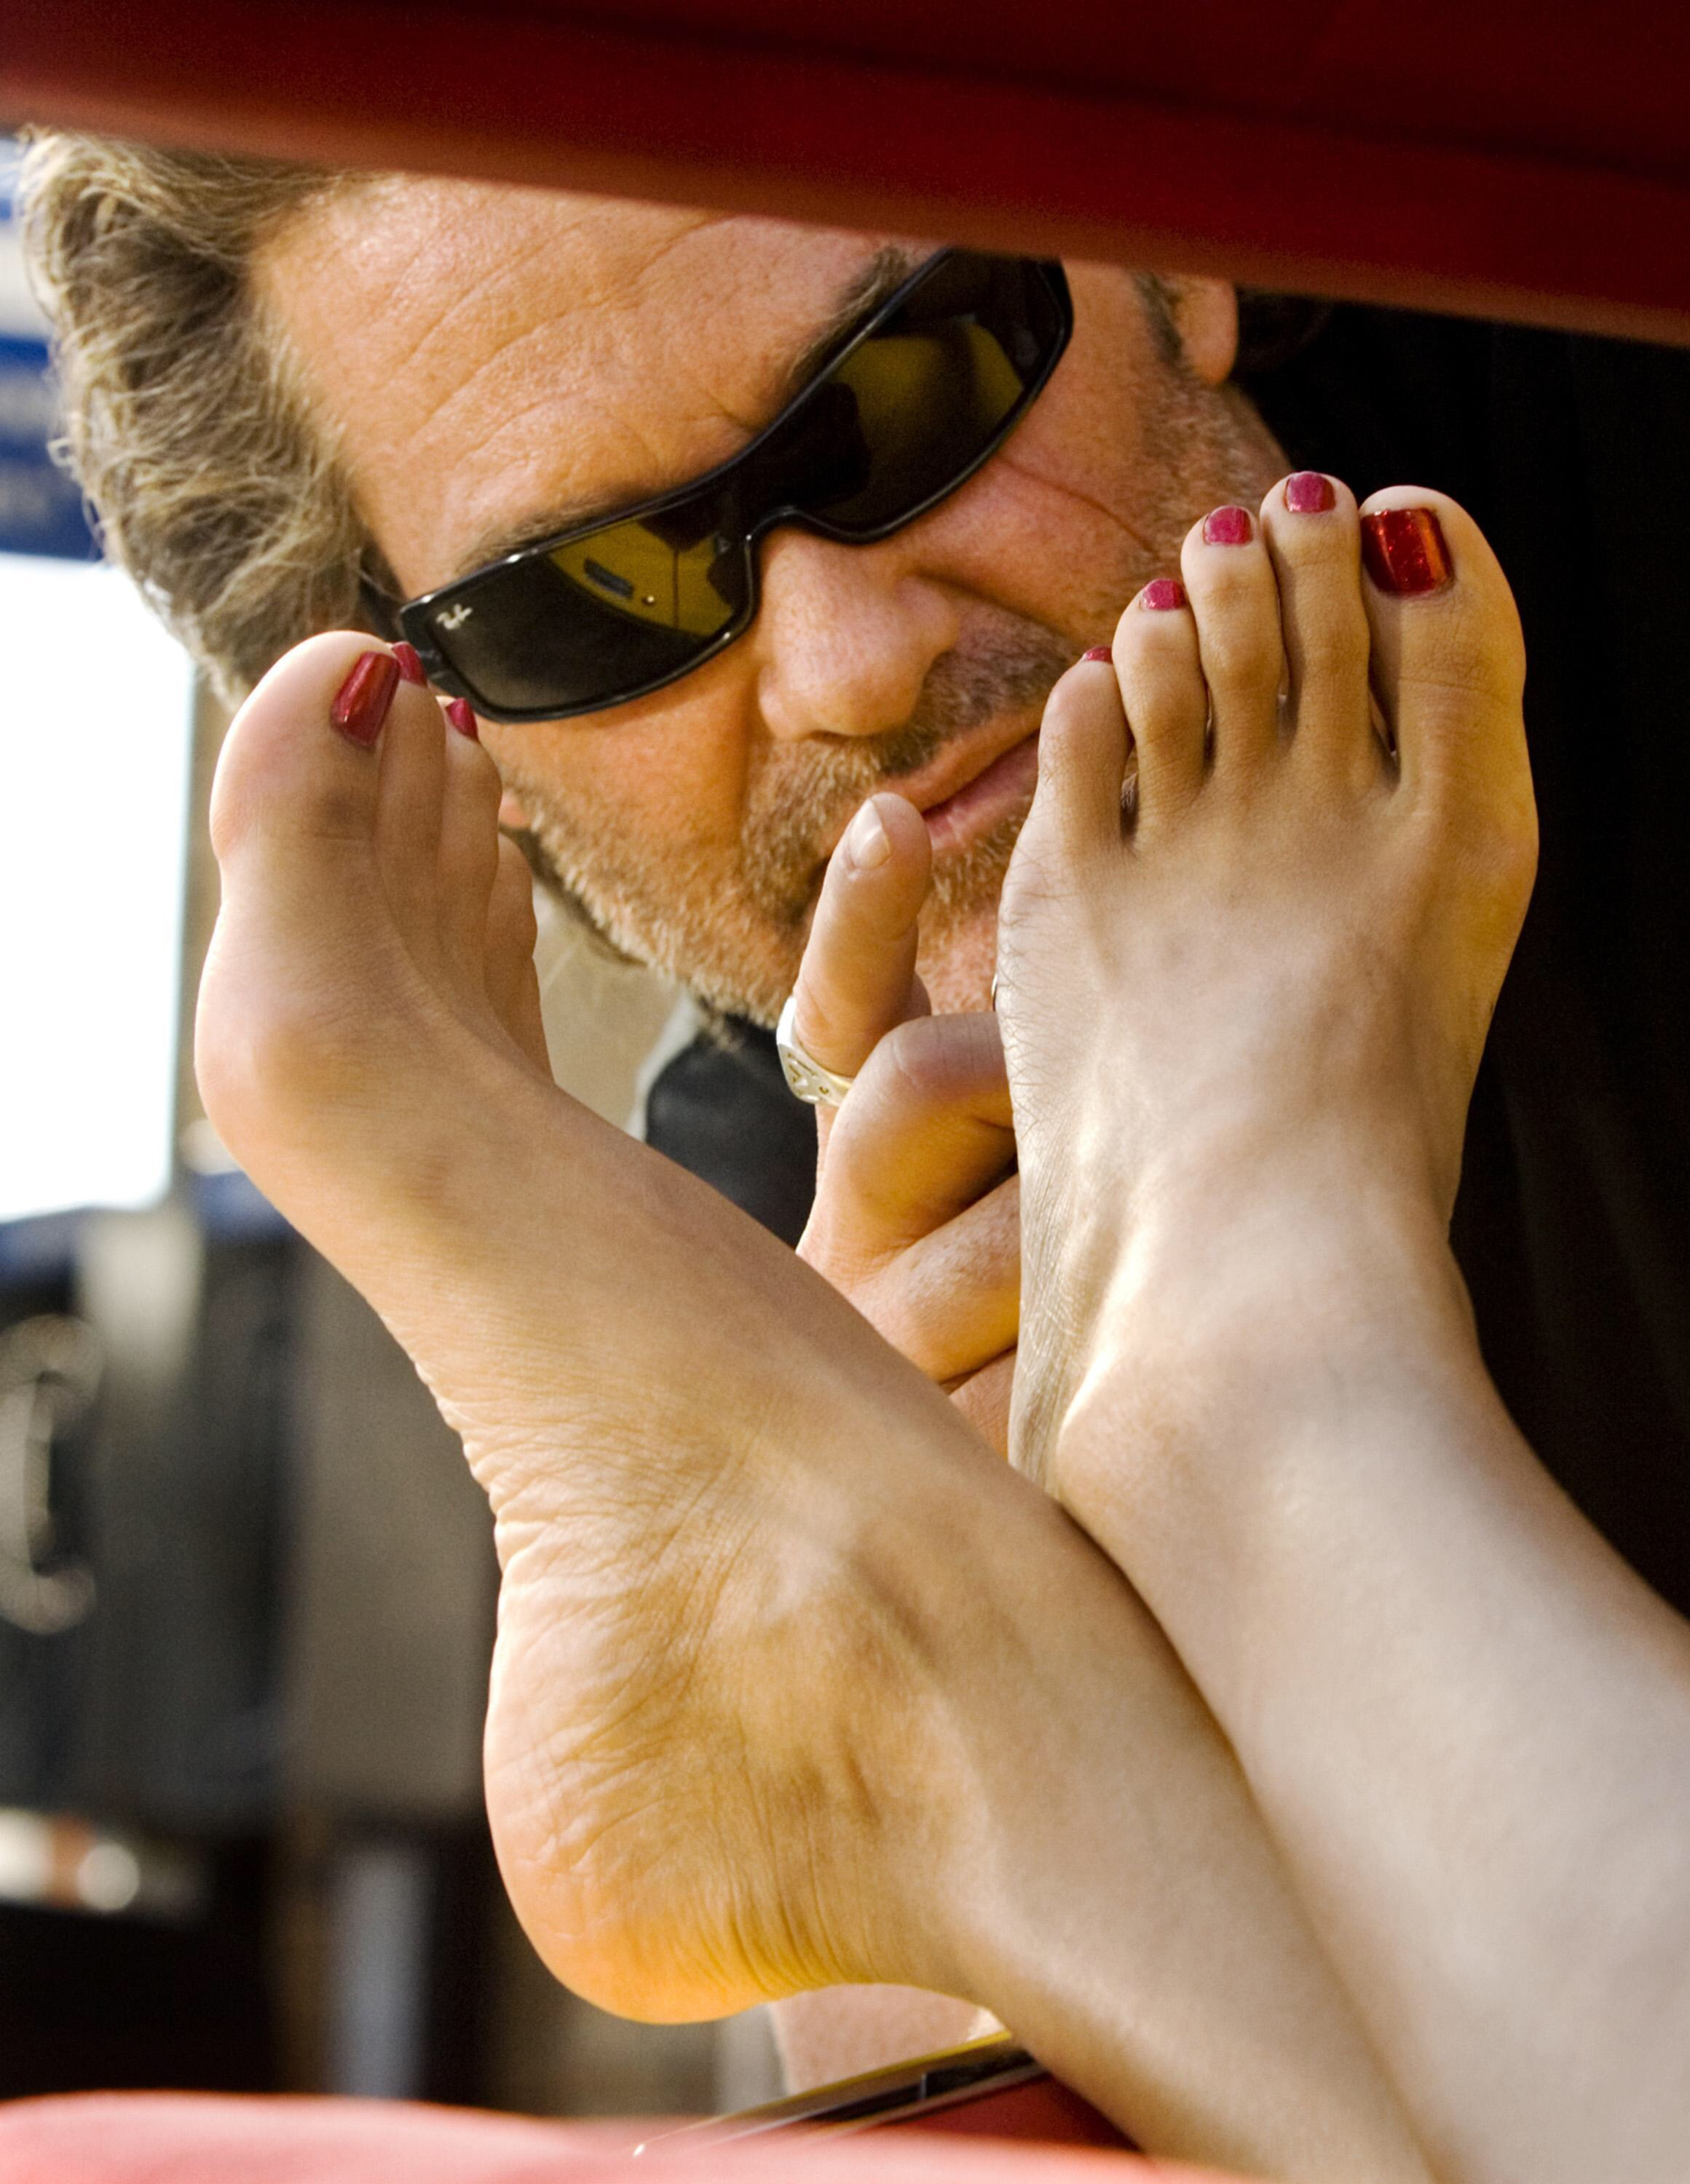 Kurt Russell about to stroke a pair of bare feet sticking out of a car window